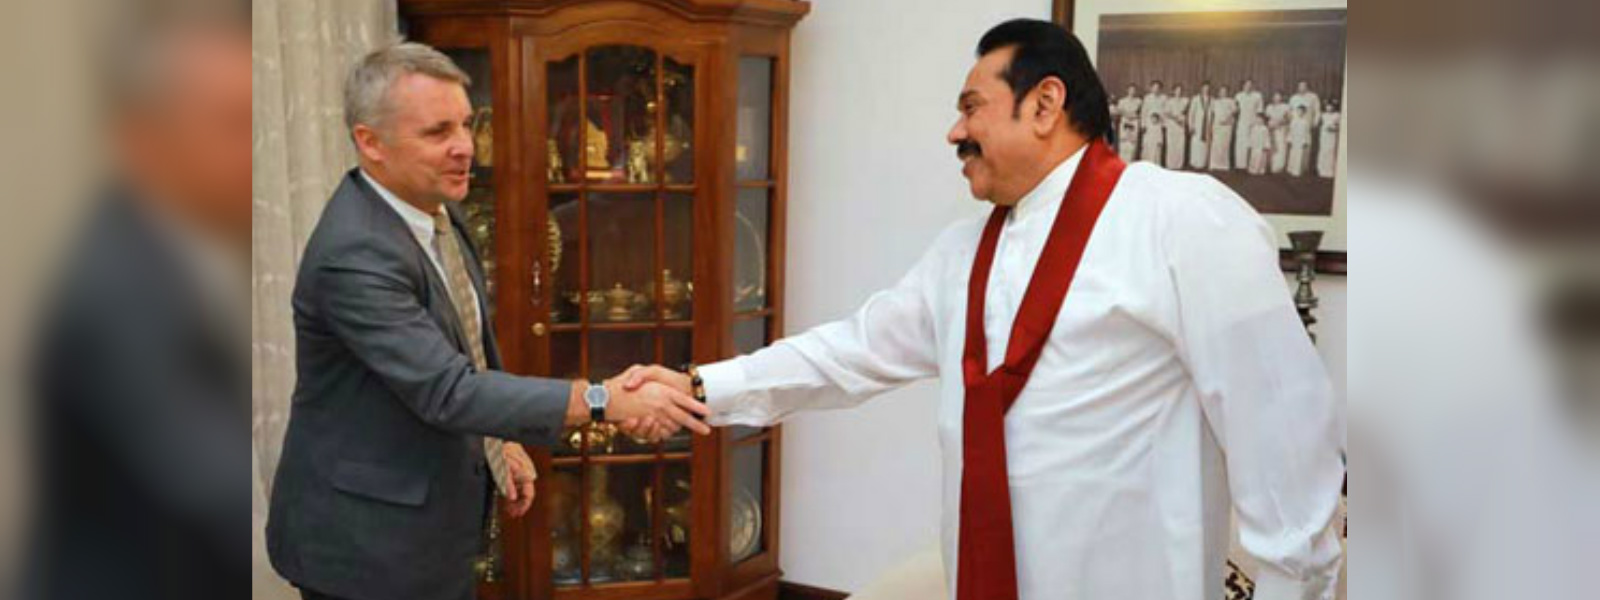 German Ambassador to Sri Lanka calls on Opposition Leader Mahinda Rajapaksa